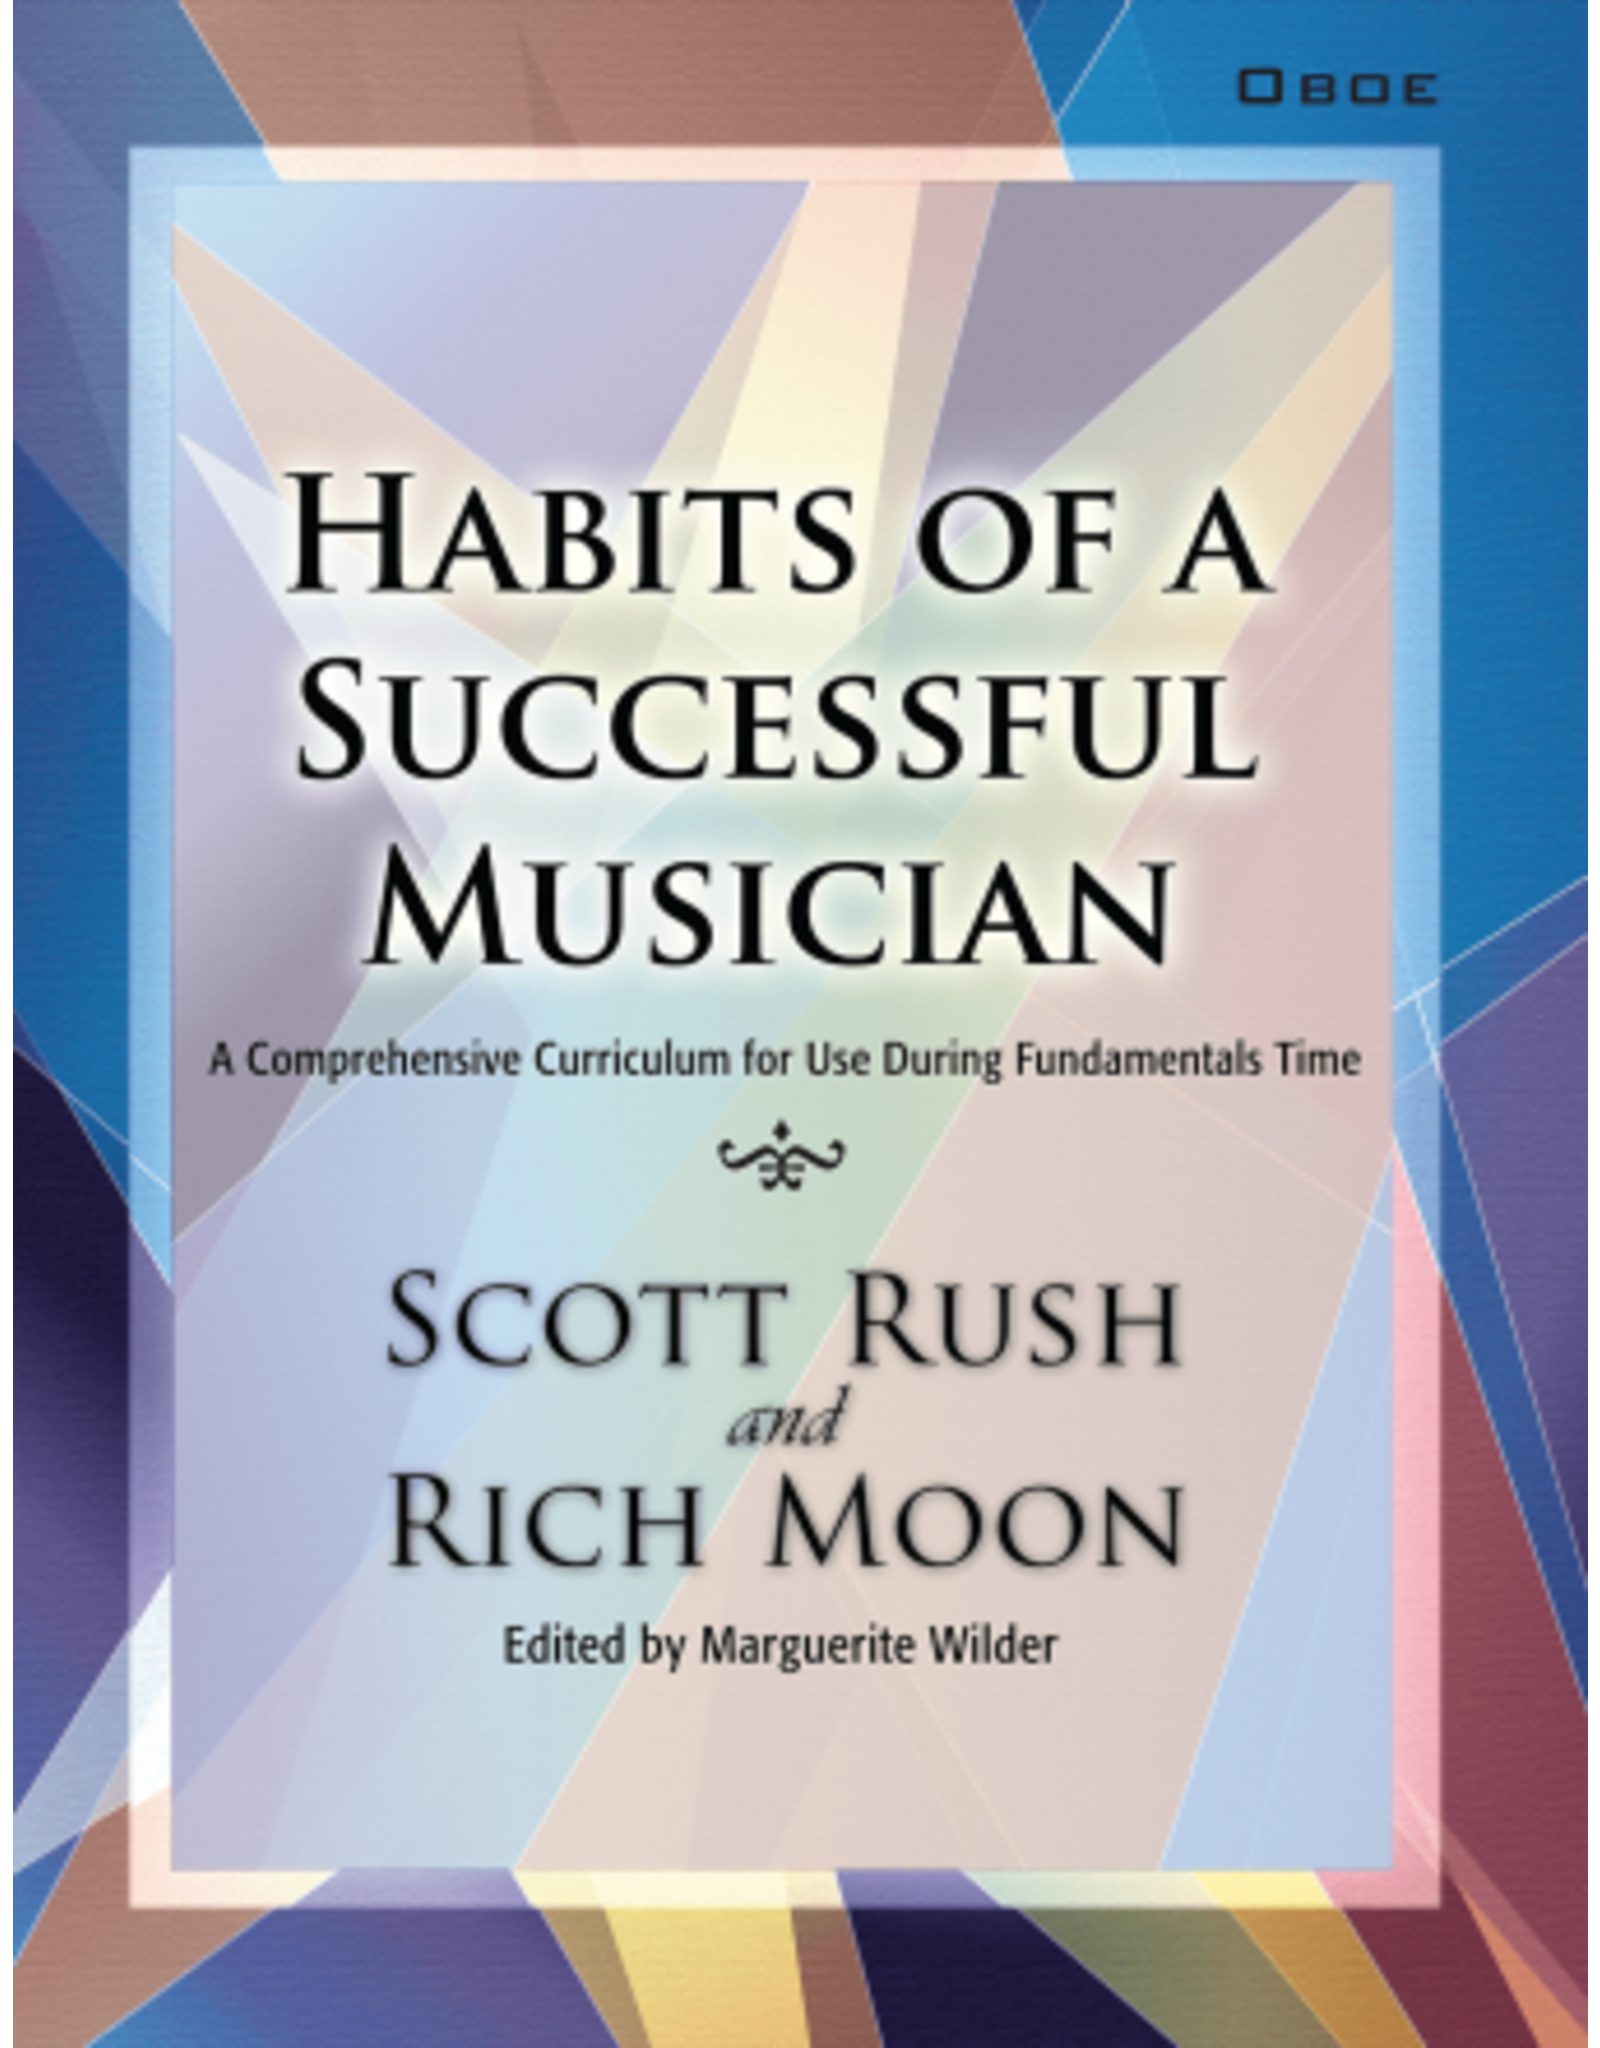 GIA Publications Habits of a Successful Musician Oboe